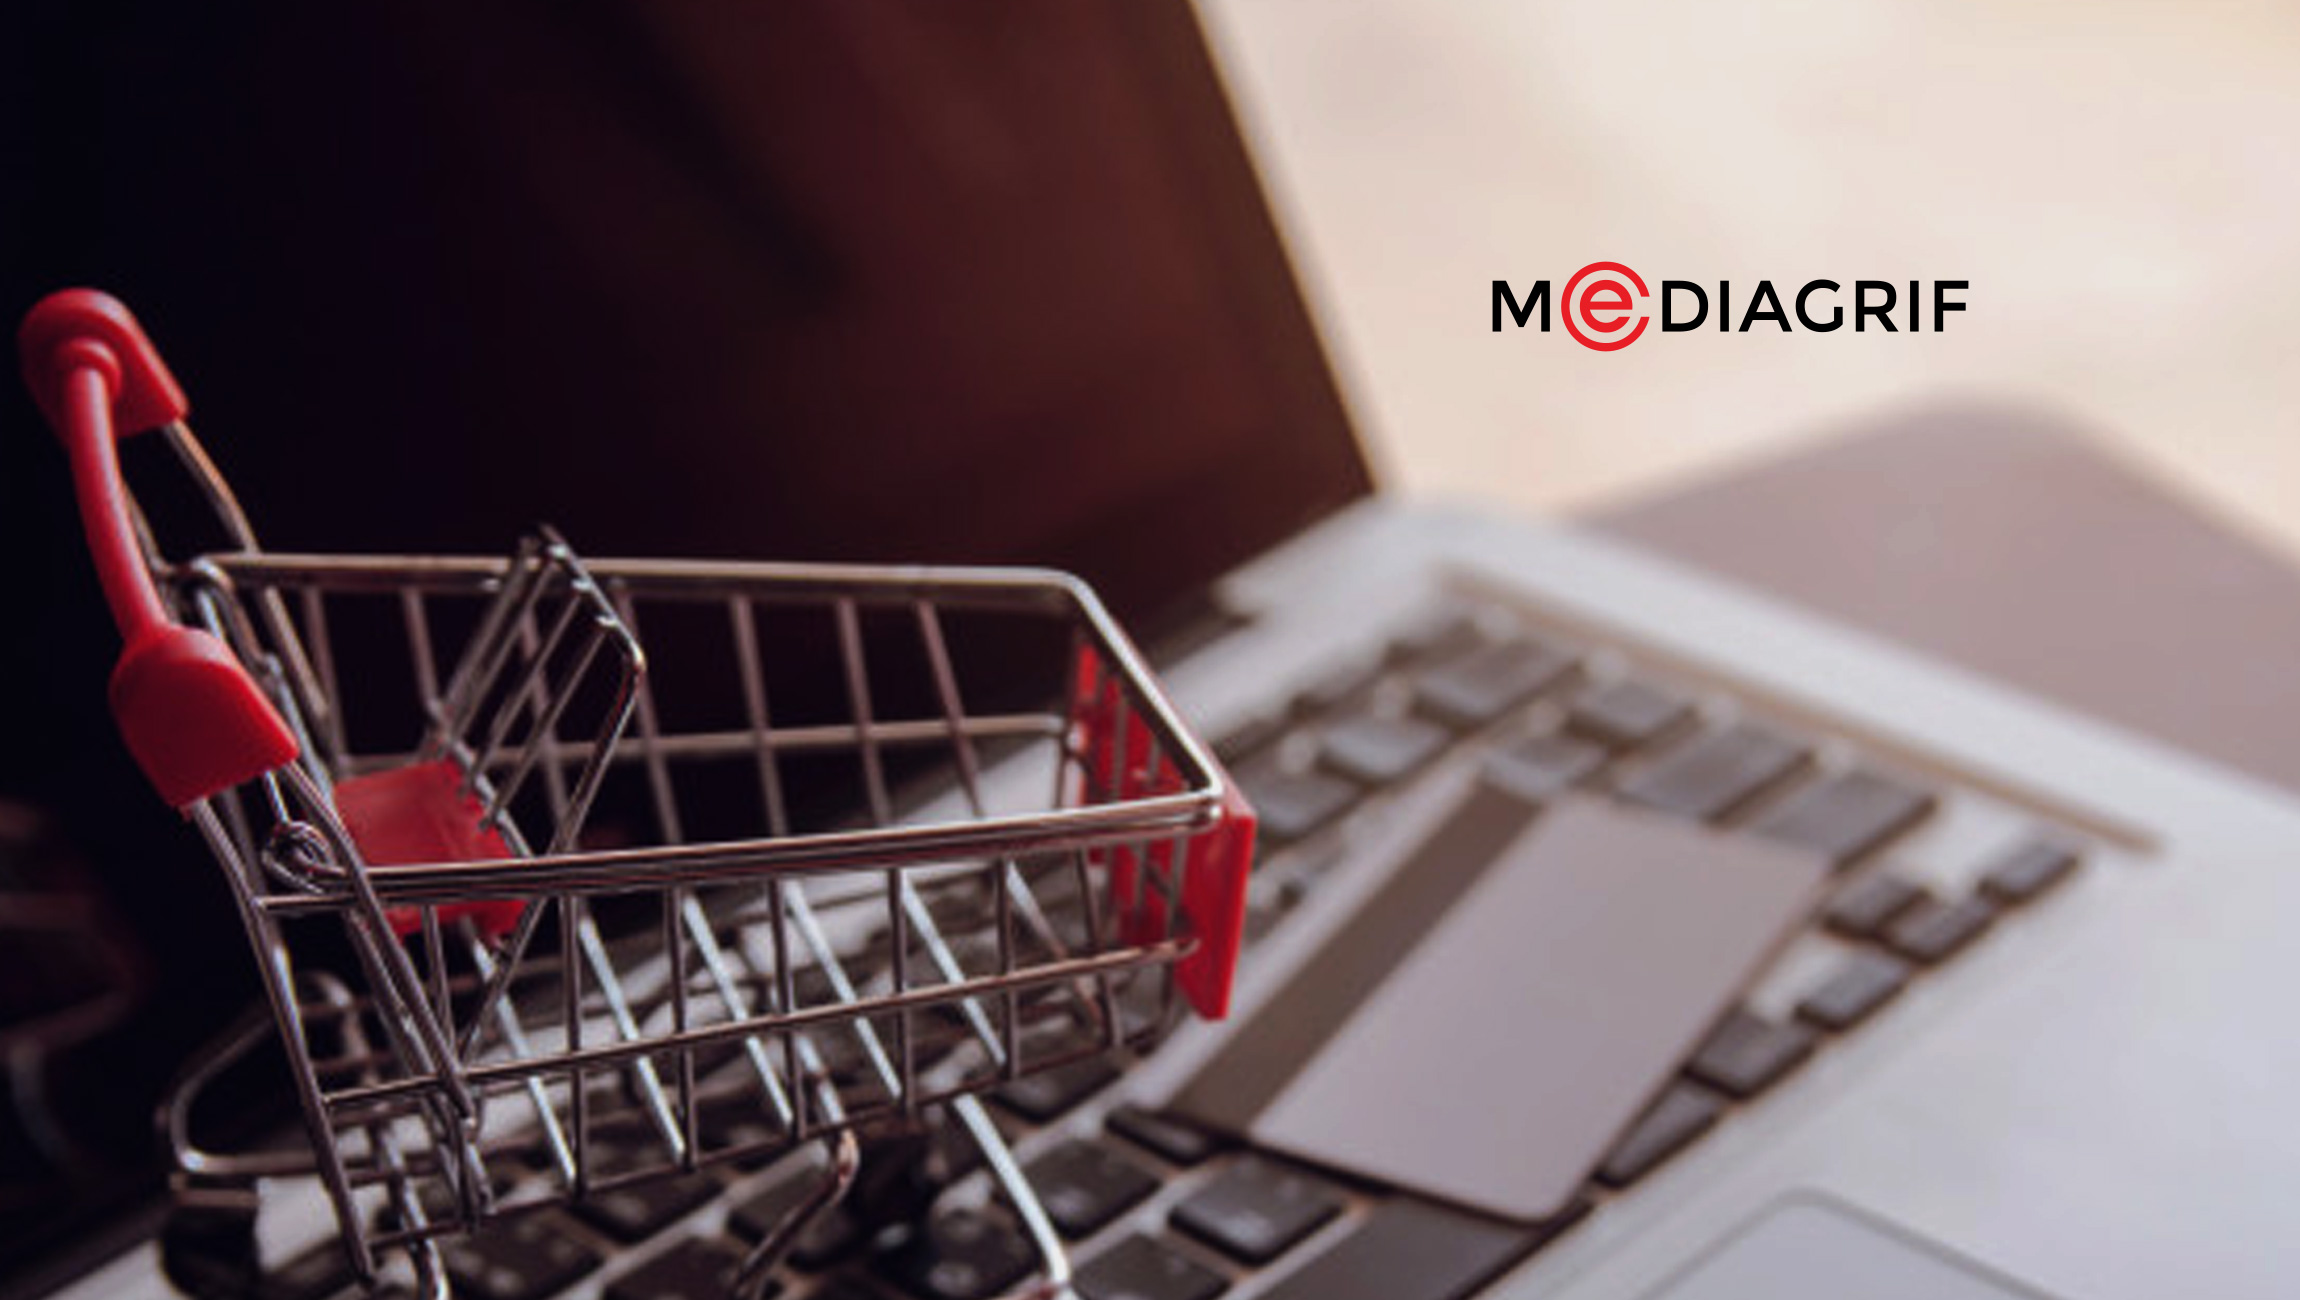 Mediagrif Announces Agreement to Acquire k-eCommerce, a Leading Provider of E-Commerce Business Solutions